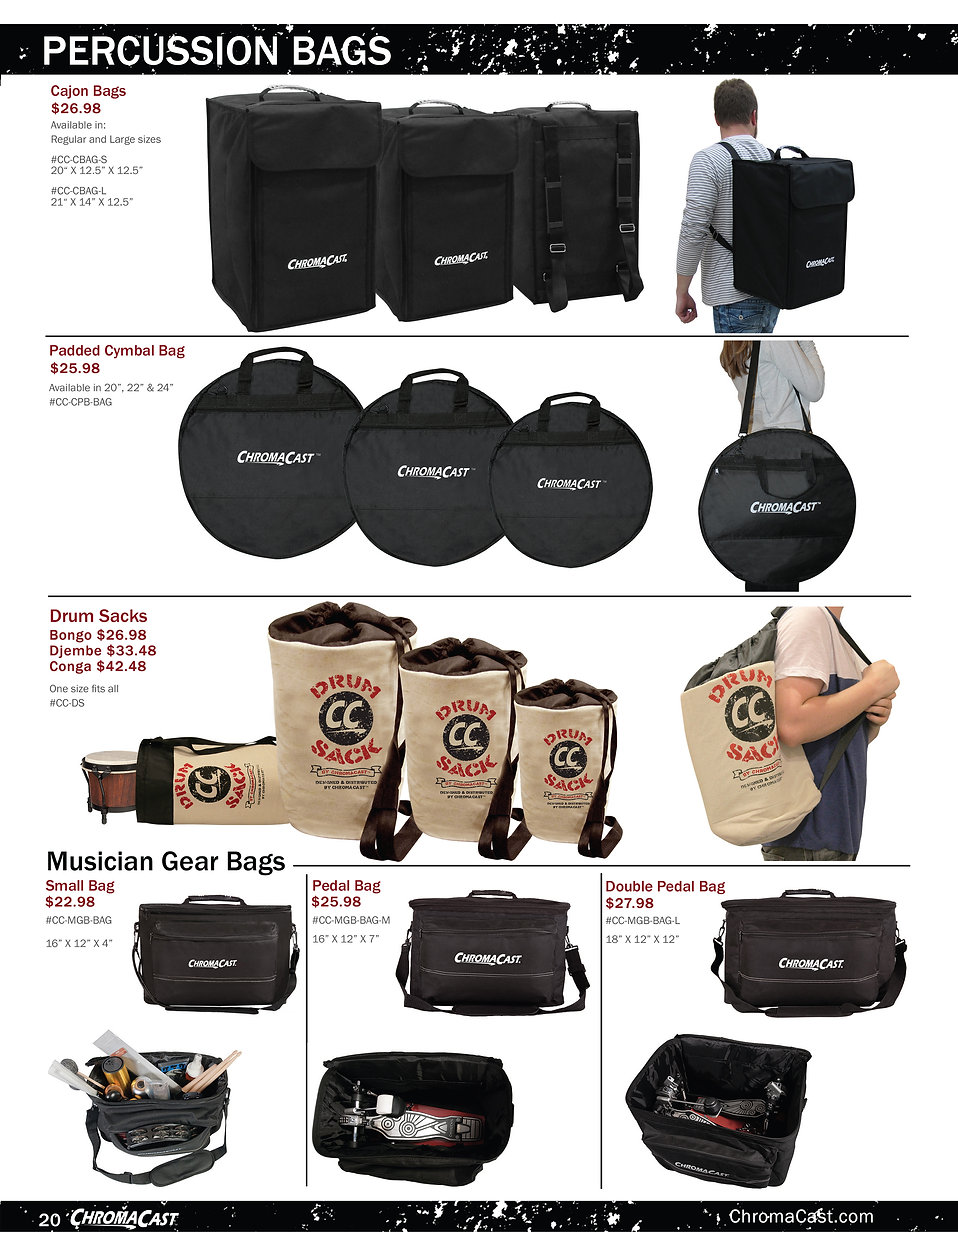 20-percussion-bags.jpg